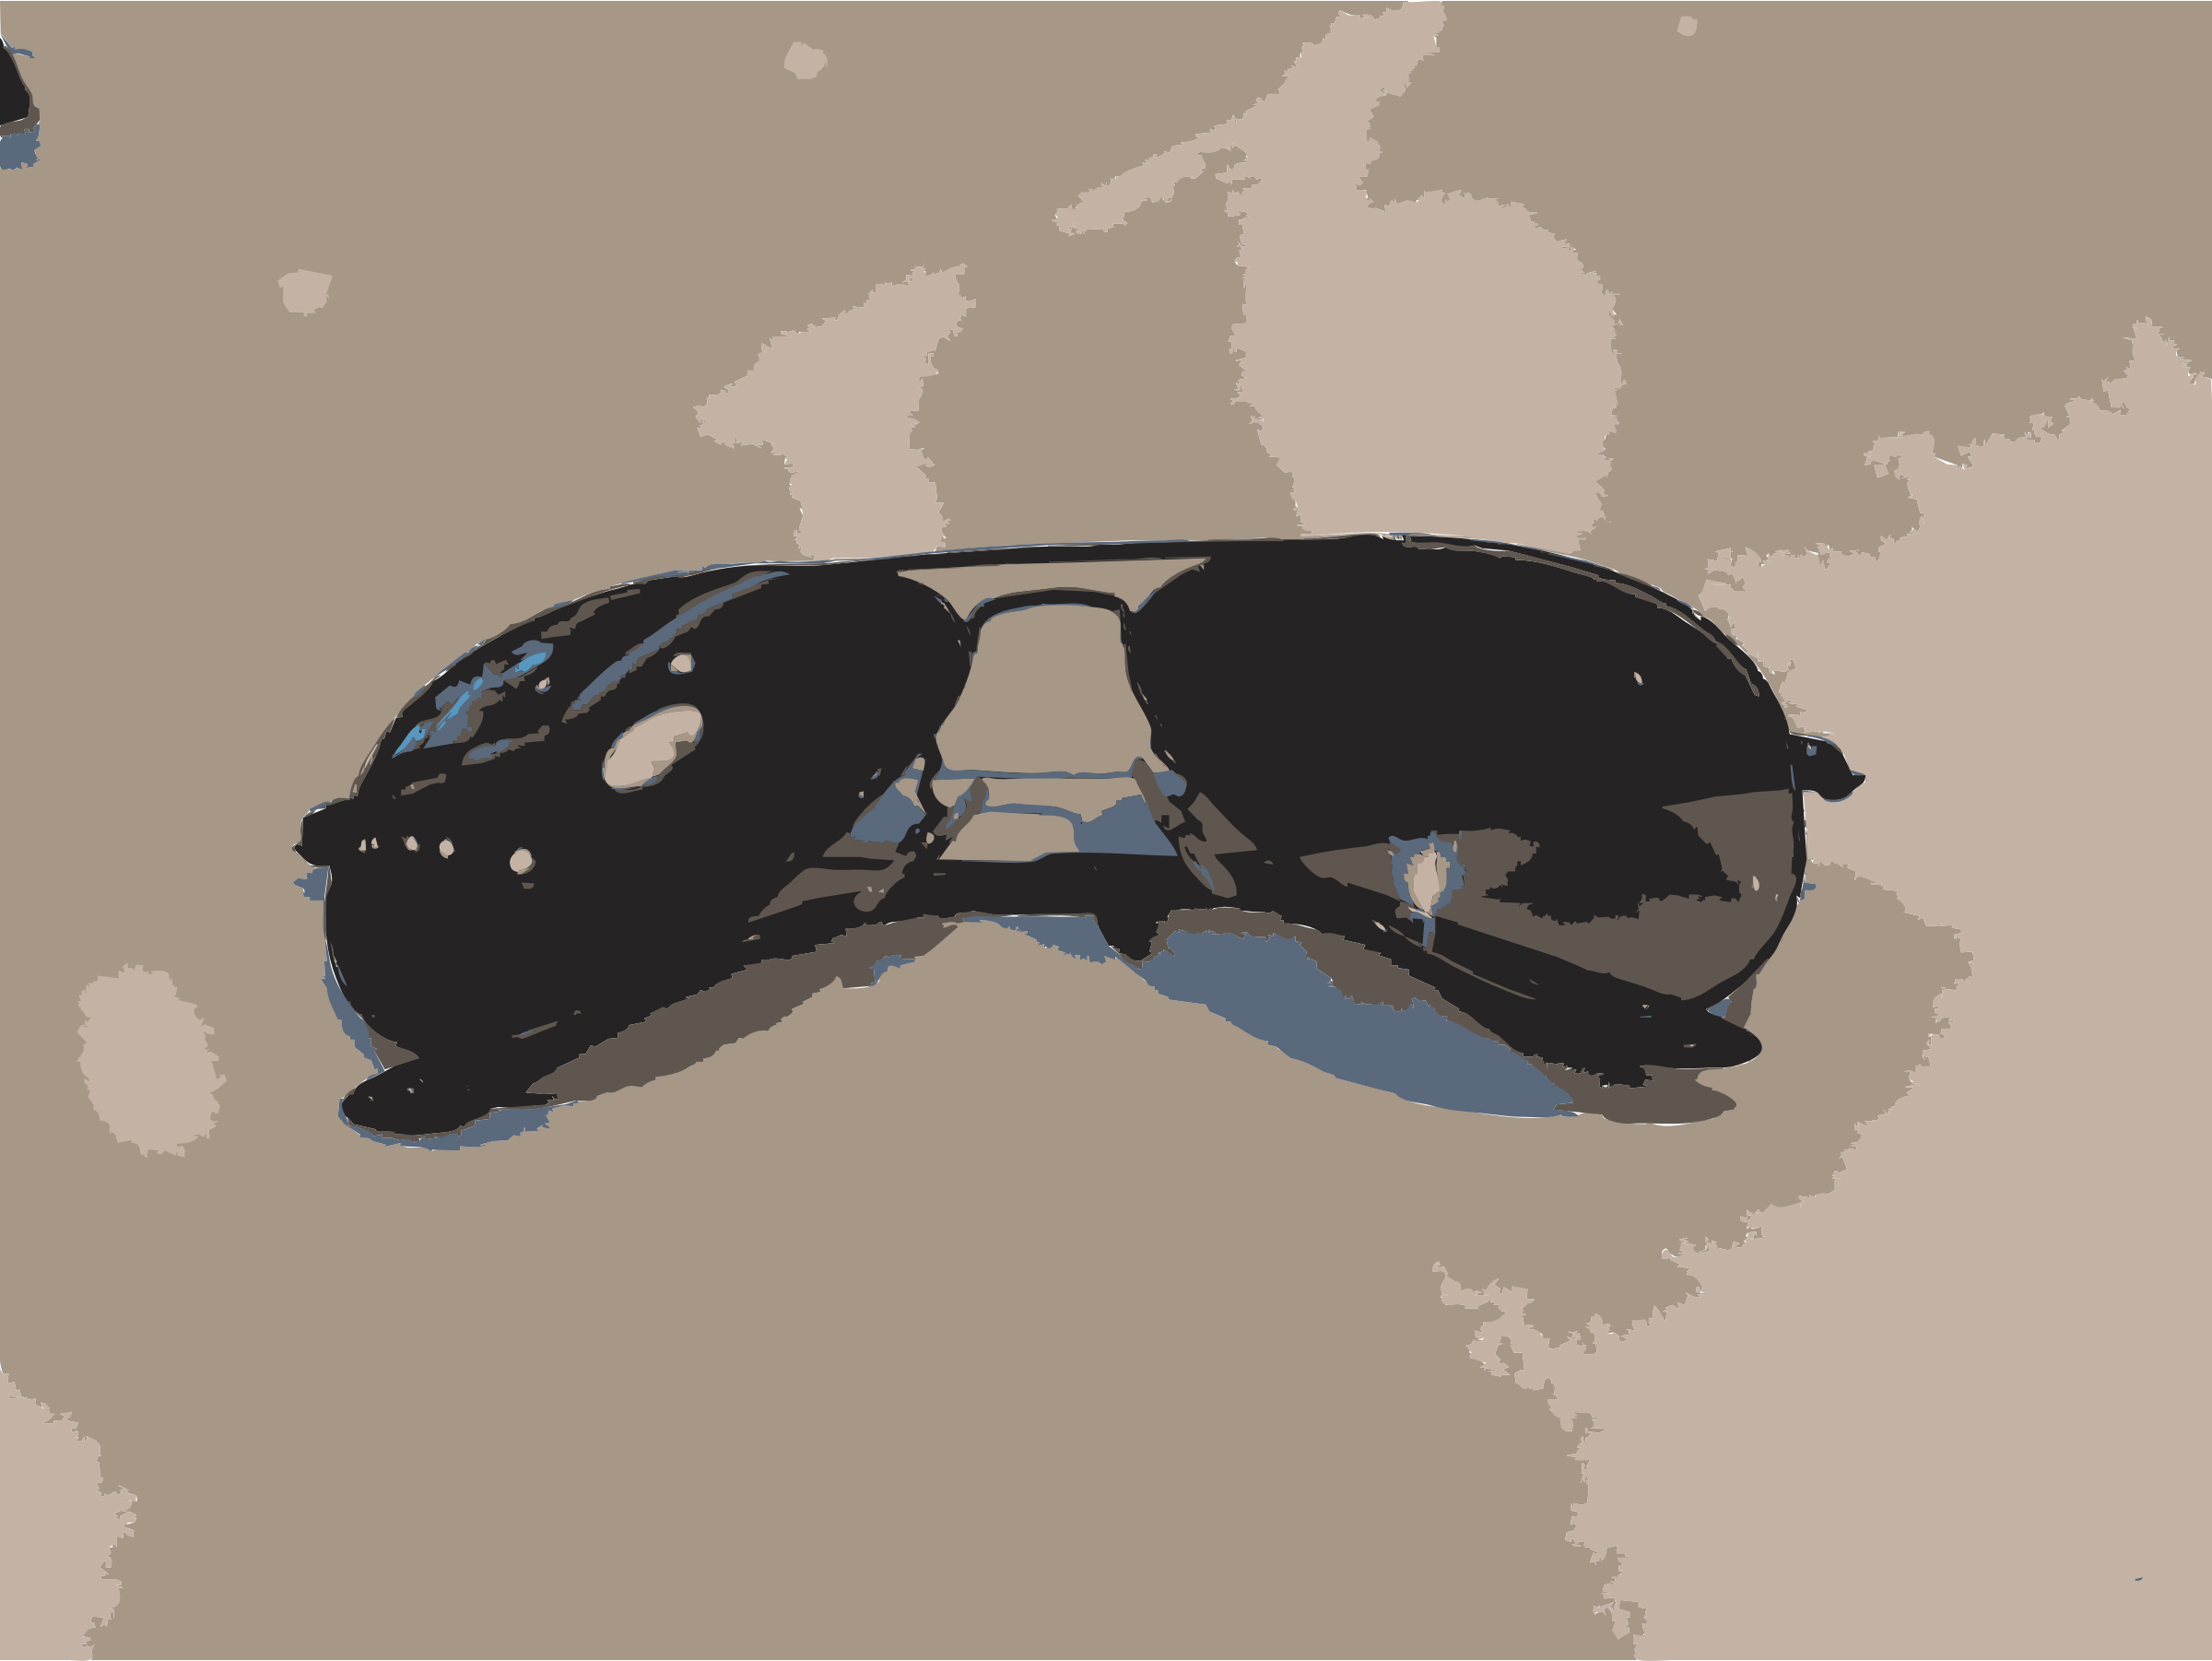 Sunglasses from another angle by rejon